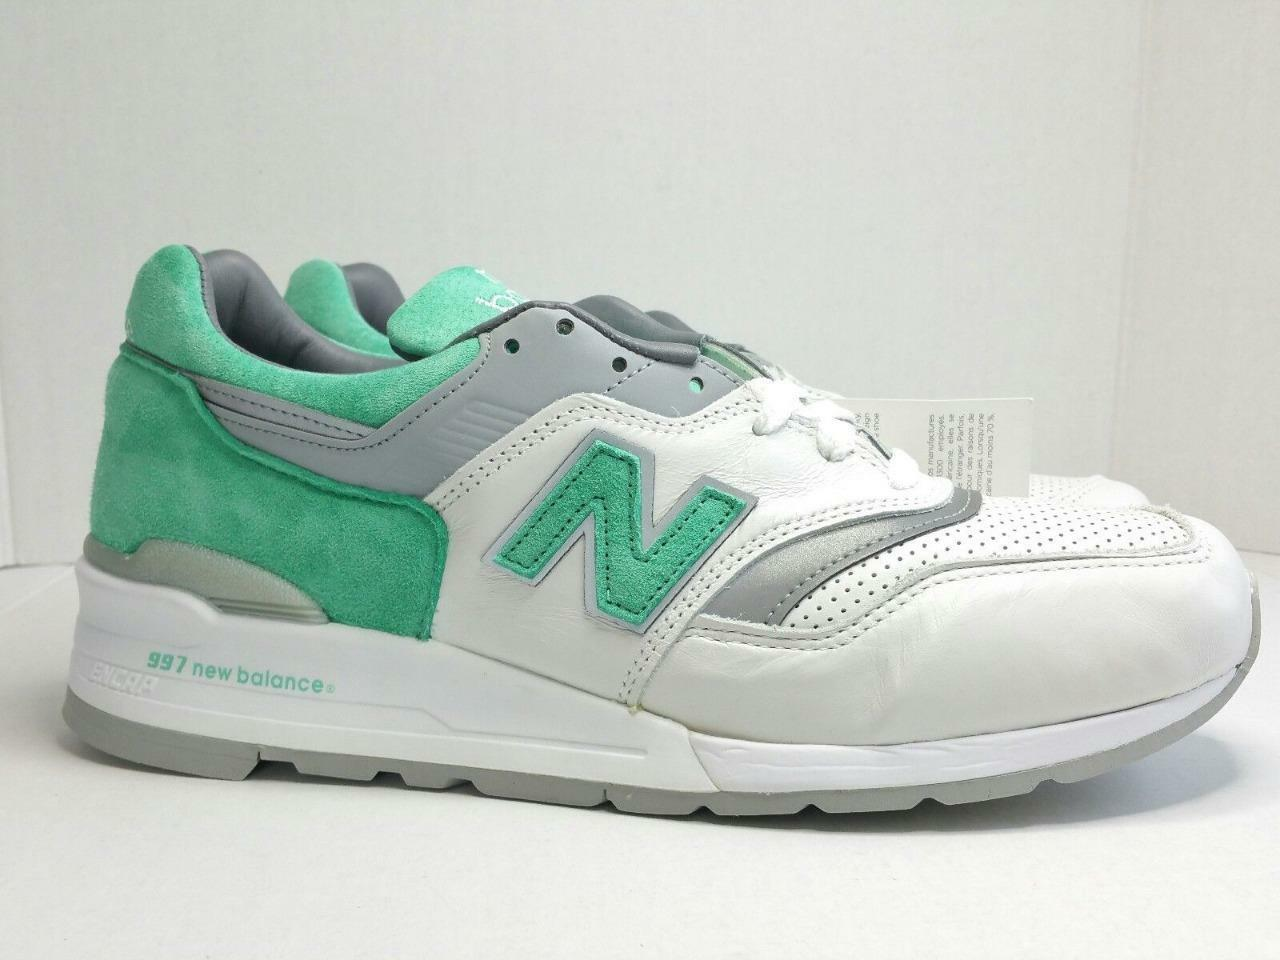 New Balance M997CMA Mint Green/White/Grey 997 Men's Shoes Sz 10.5 M Made In USA